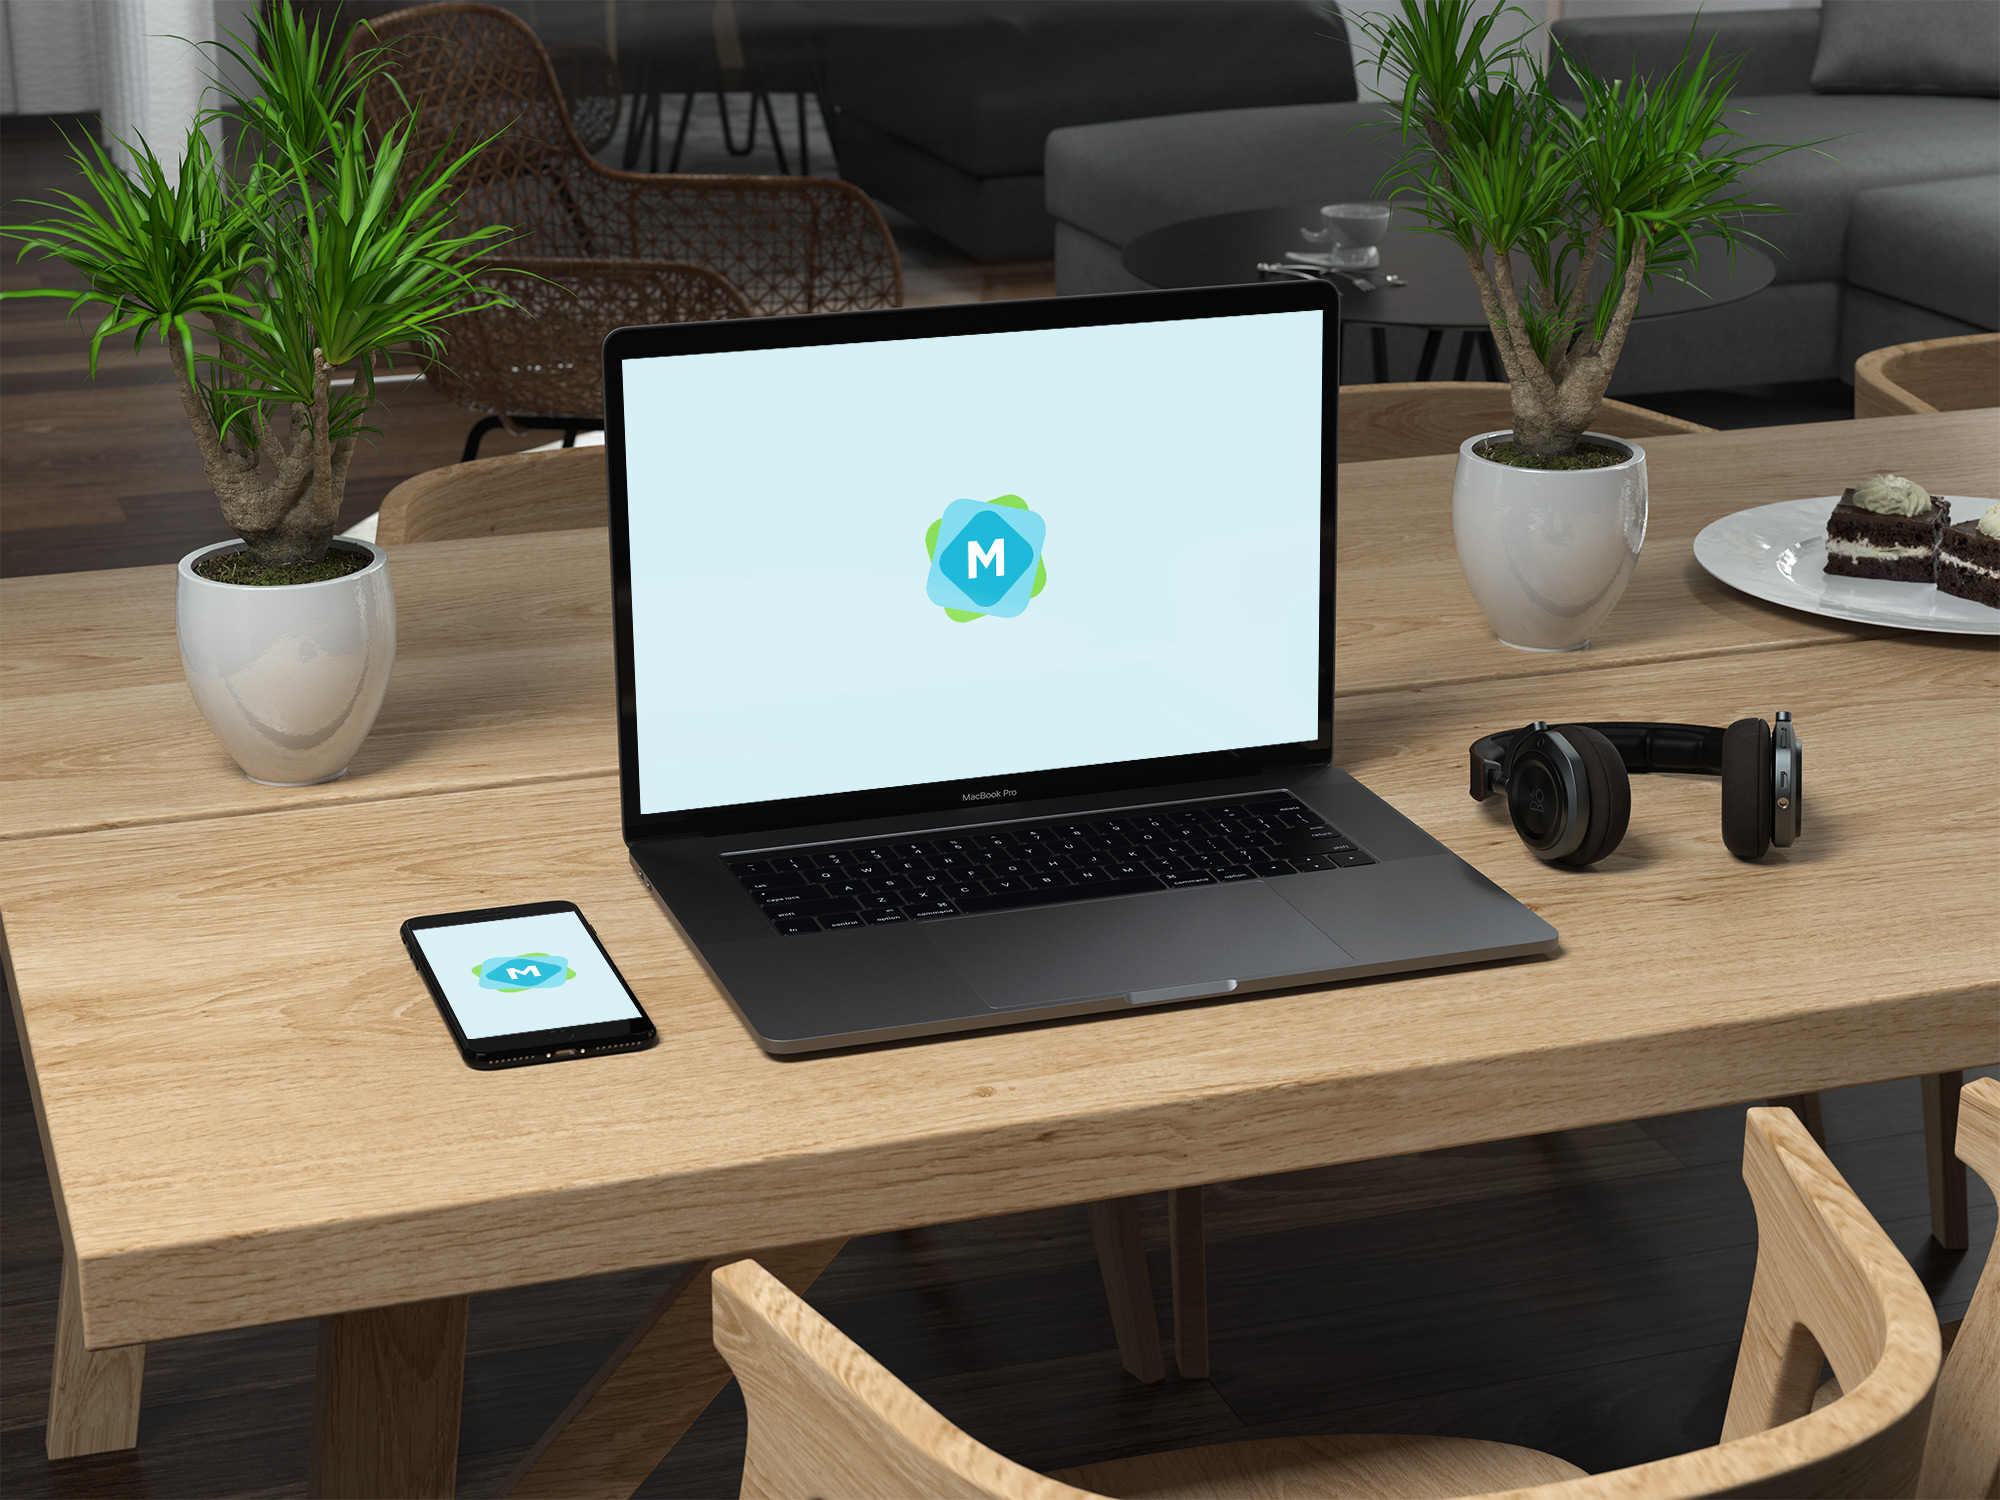 Macbook And Iphone On Table Mockup Mockup Templates